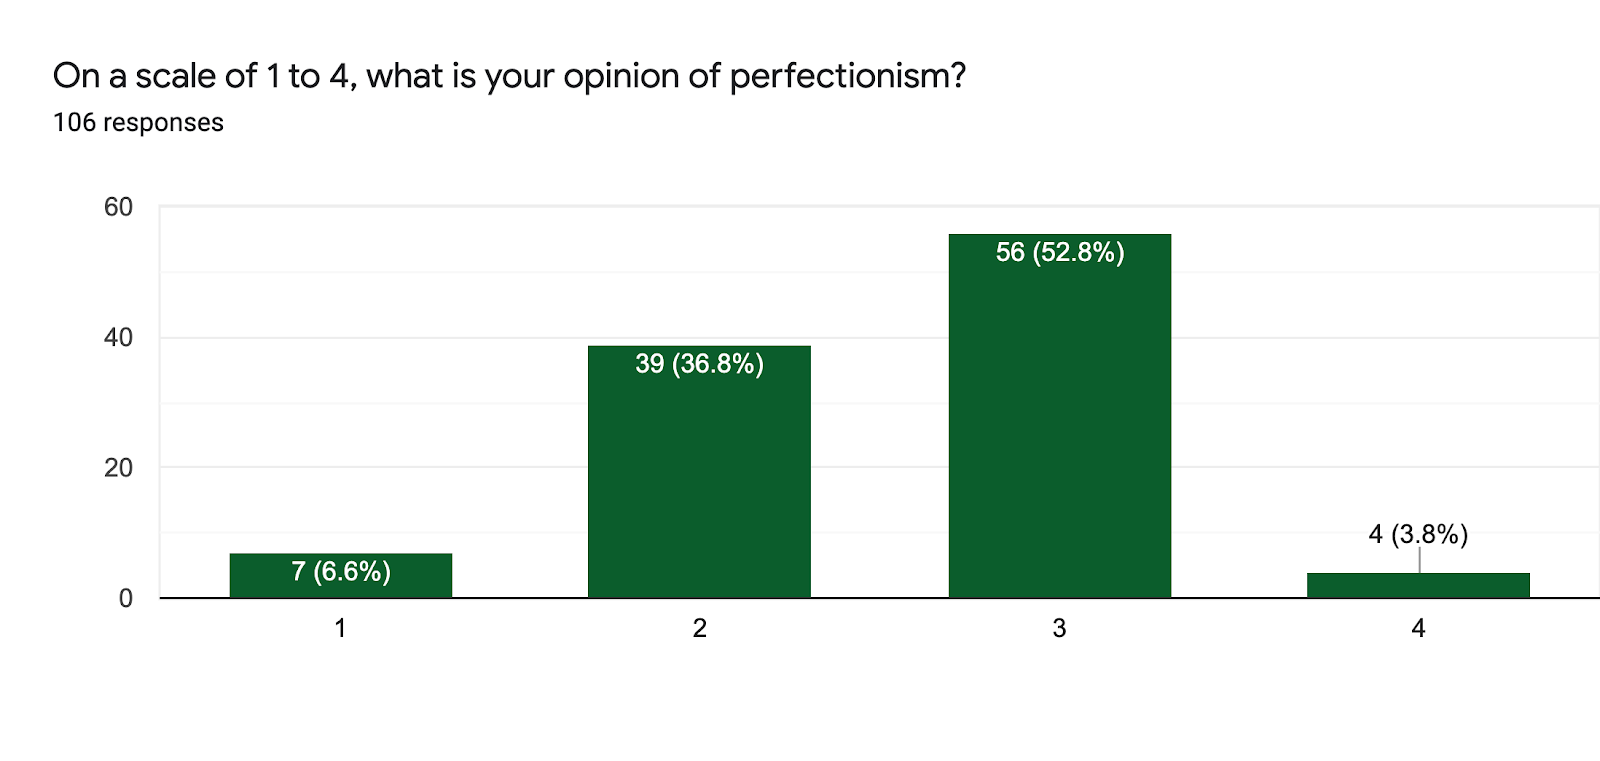 Forms response chart. Question title: On a scale of 1 to 4, what is your opinion of perfectionism?. Number of responses: 106 responses.